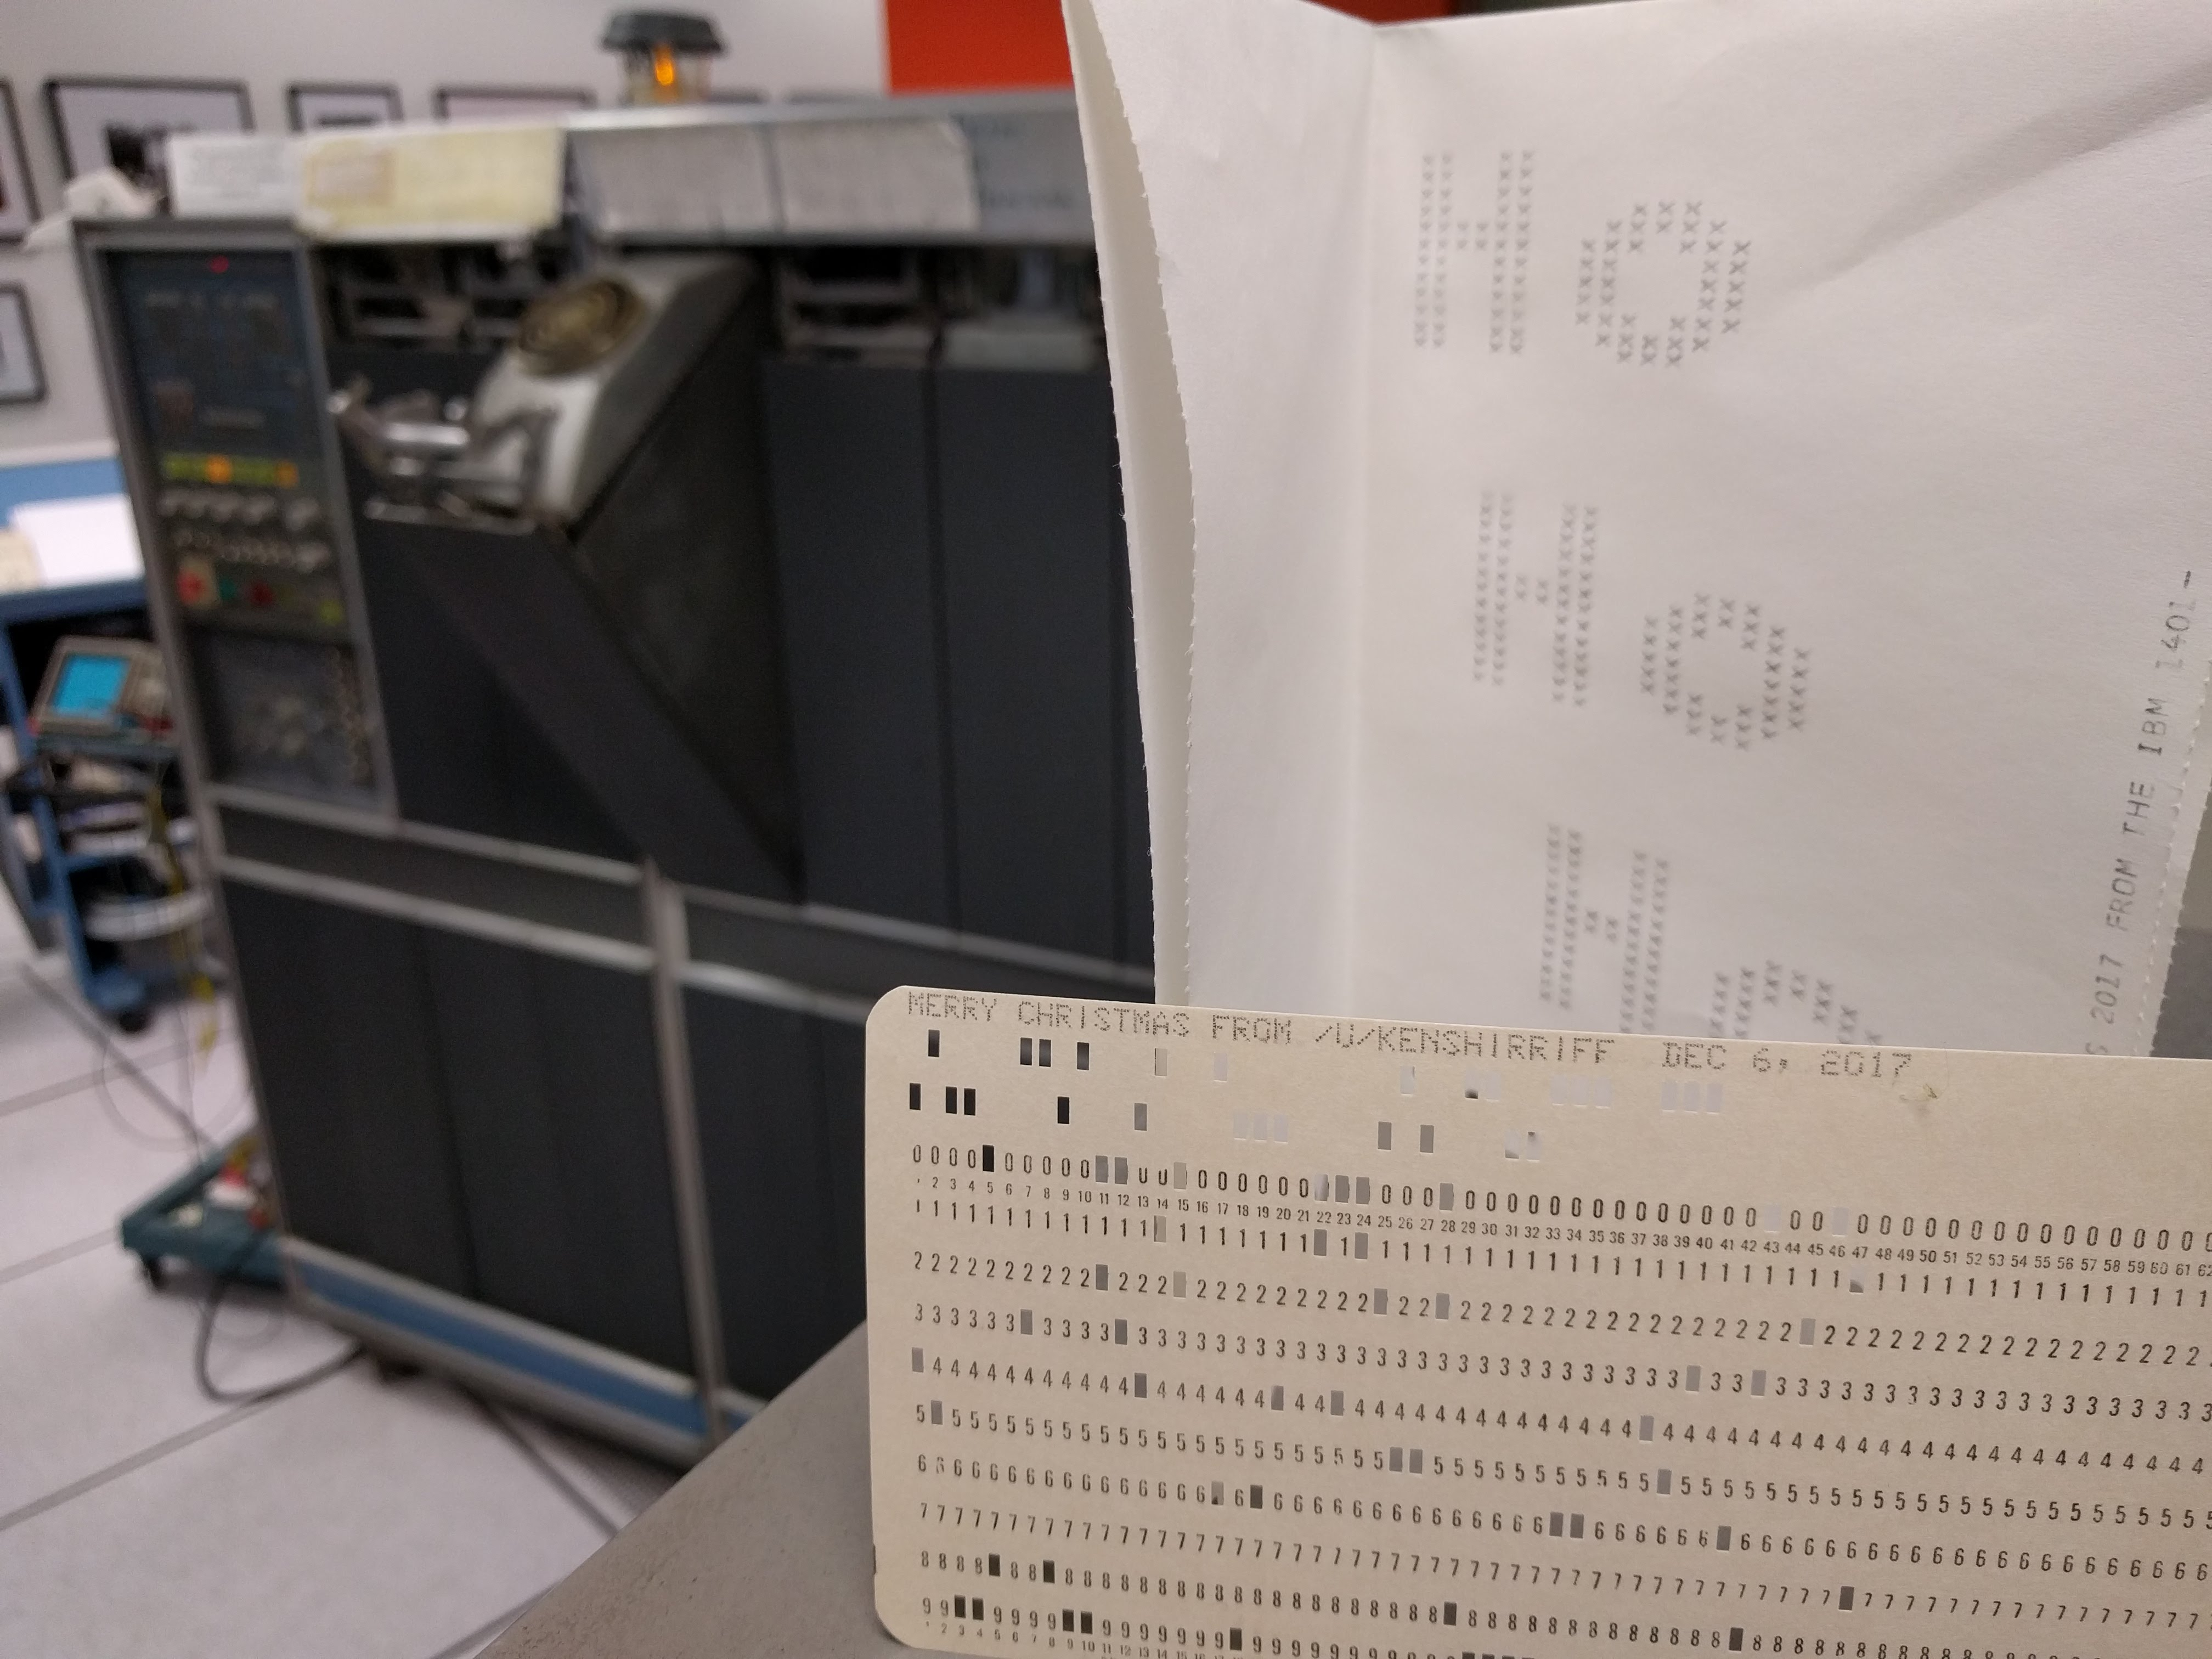 My blog post goes into details of how I created the card, punched a card  deck, and ran it on the IBM 1401.